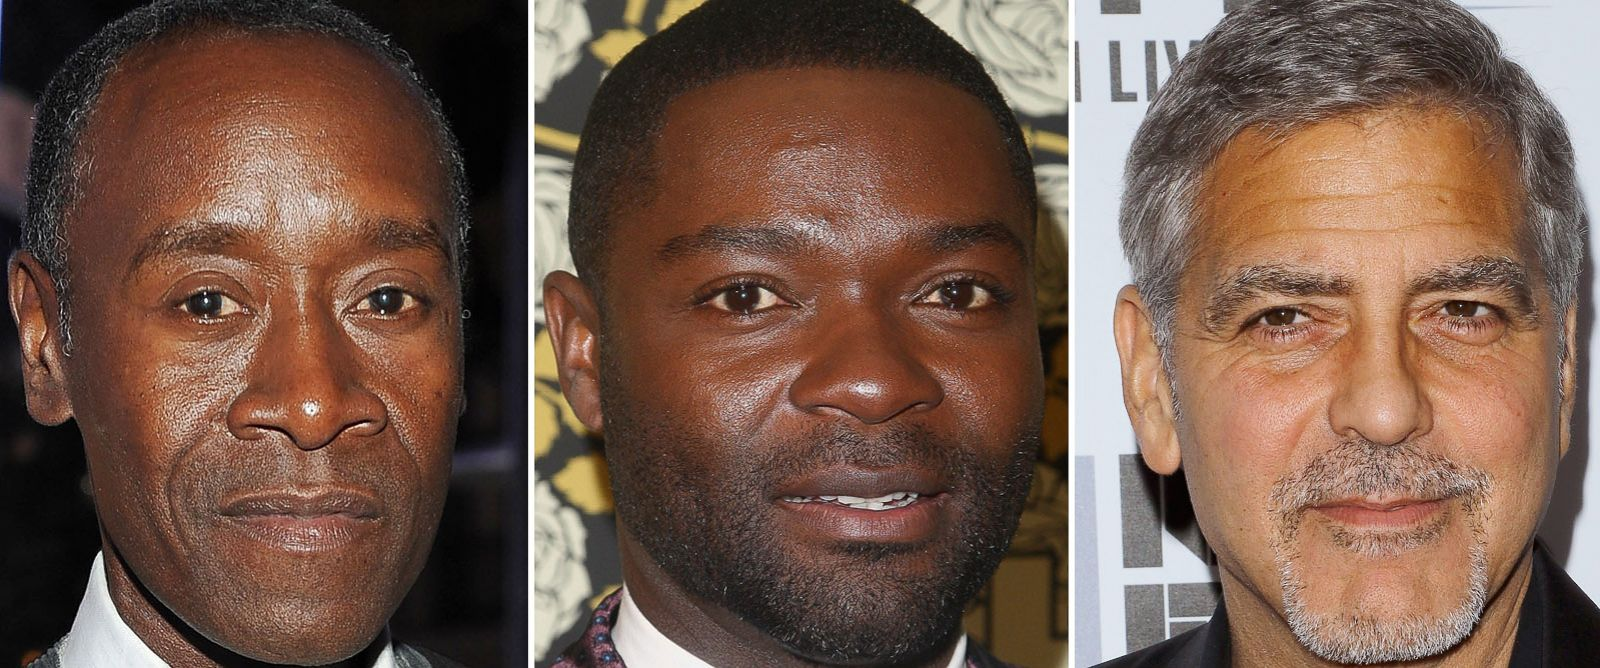 PHOTO: Don Cheadle attends Audemars Piguet Celebrates an opening on Dec. 9, 2015.   David Oyelowo attends the HBOs Post 2016 Golden Globe Awards Party on Jan. 10, 2016. Actor George Clooney attends a screening on Sep. 29, 2015.